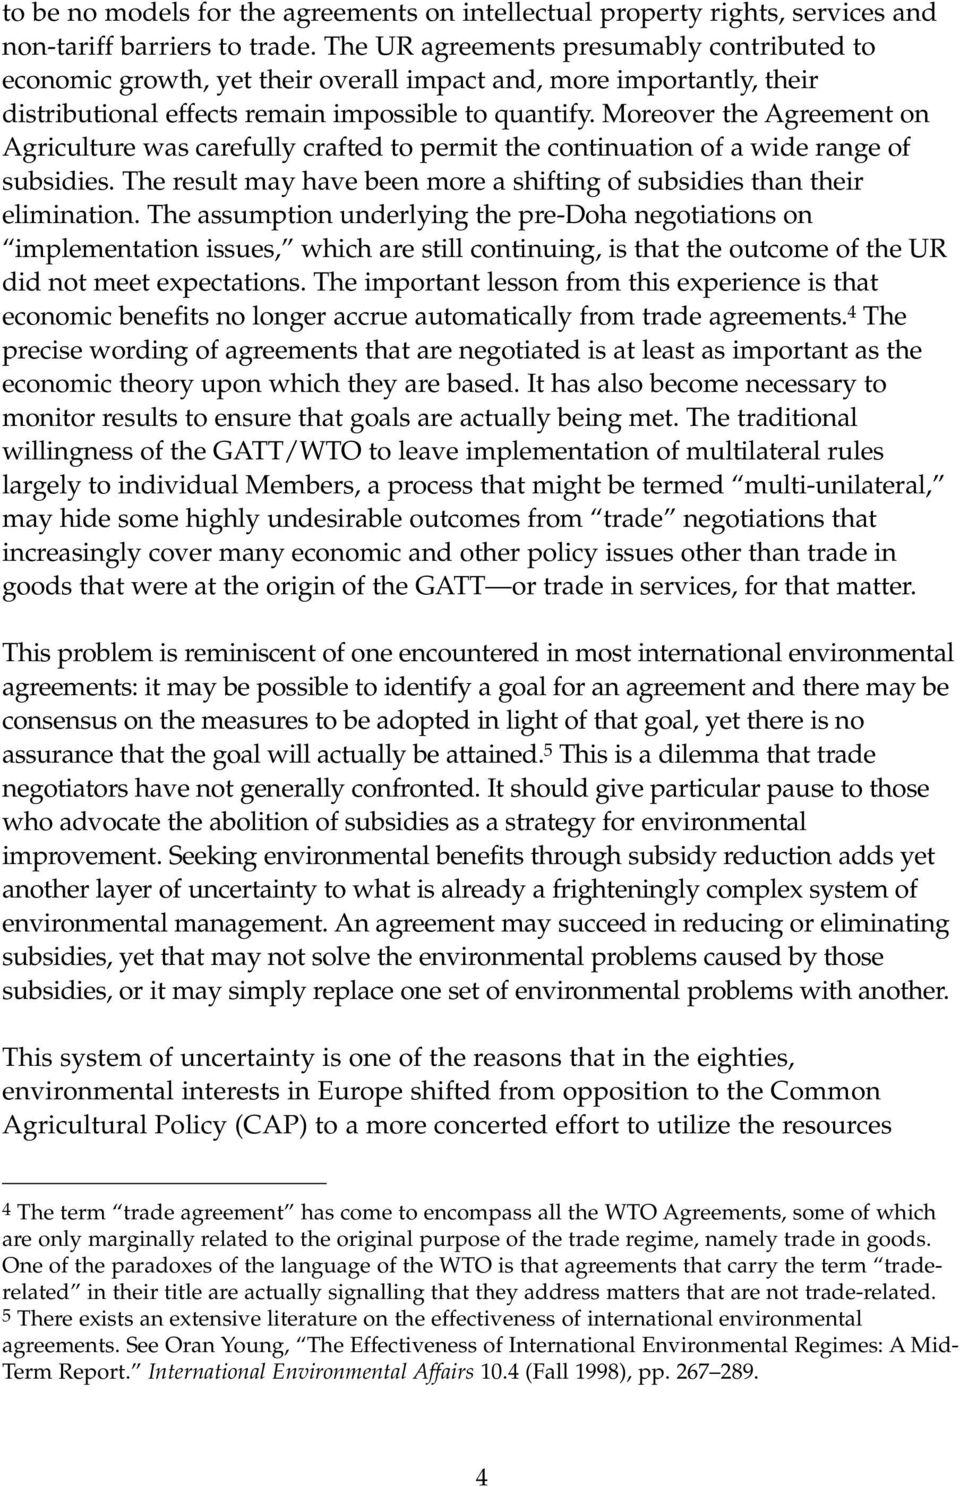 Moreover the Agreement on Agriculture was carefully crafted to permit the continuation of a wide range of subsidies. The result may have been more a shifting of subsidies than their elimination.